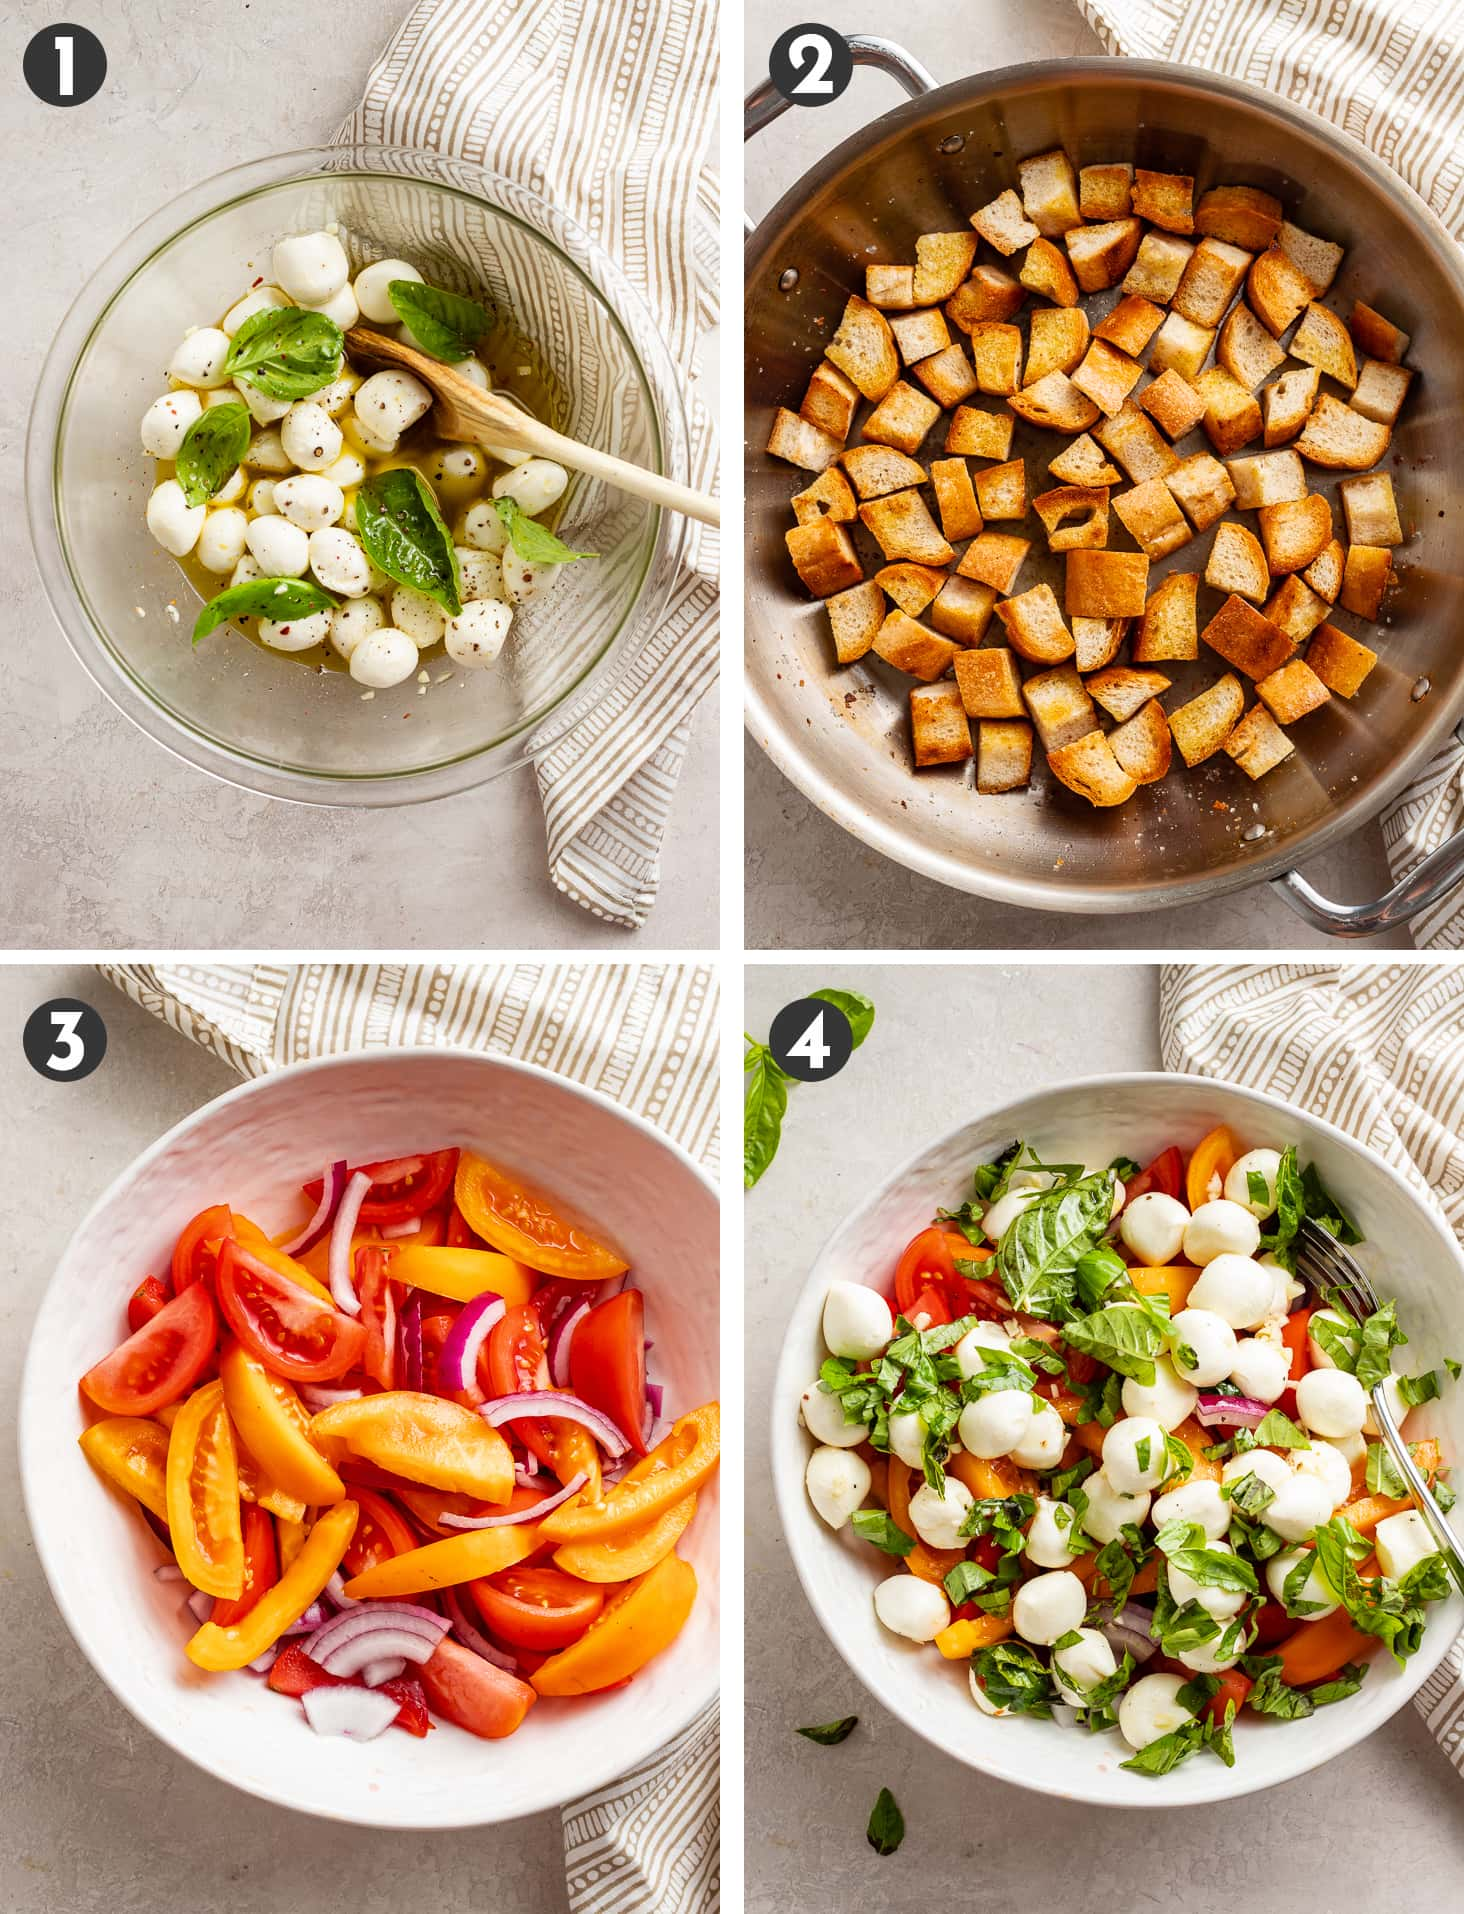 Step by step photos of assembling a Panzanella with marinated mozzarella and tomatoes.